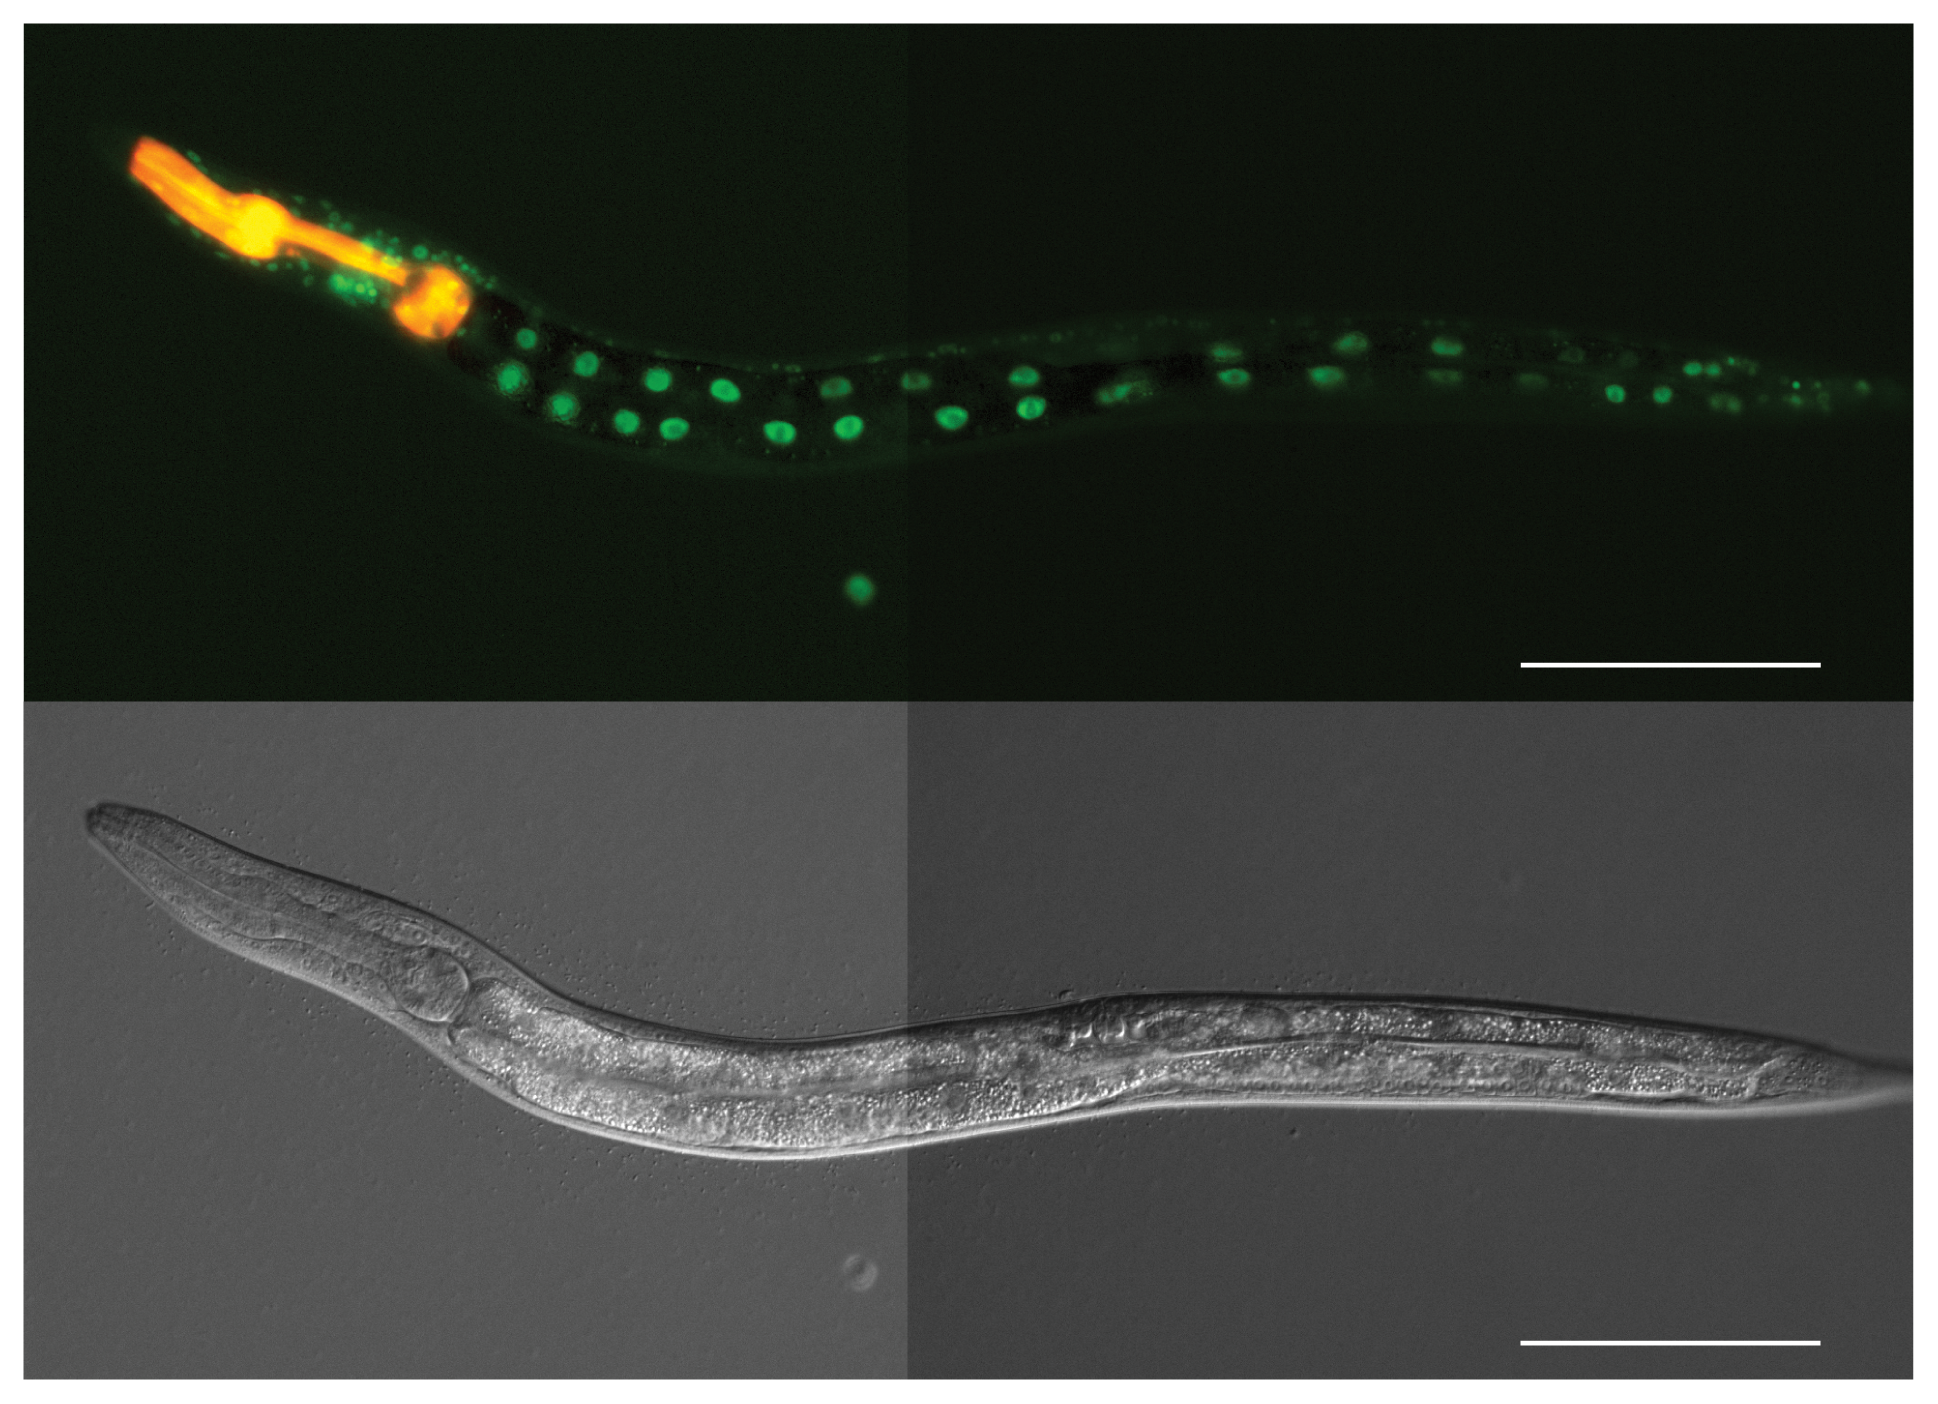 ATF-7 is expressed in the nuclei of intestinal cells in <i>C. elegans</i>.